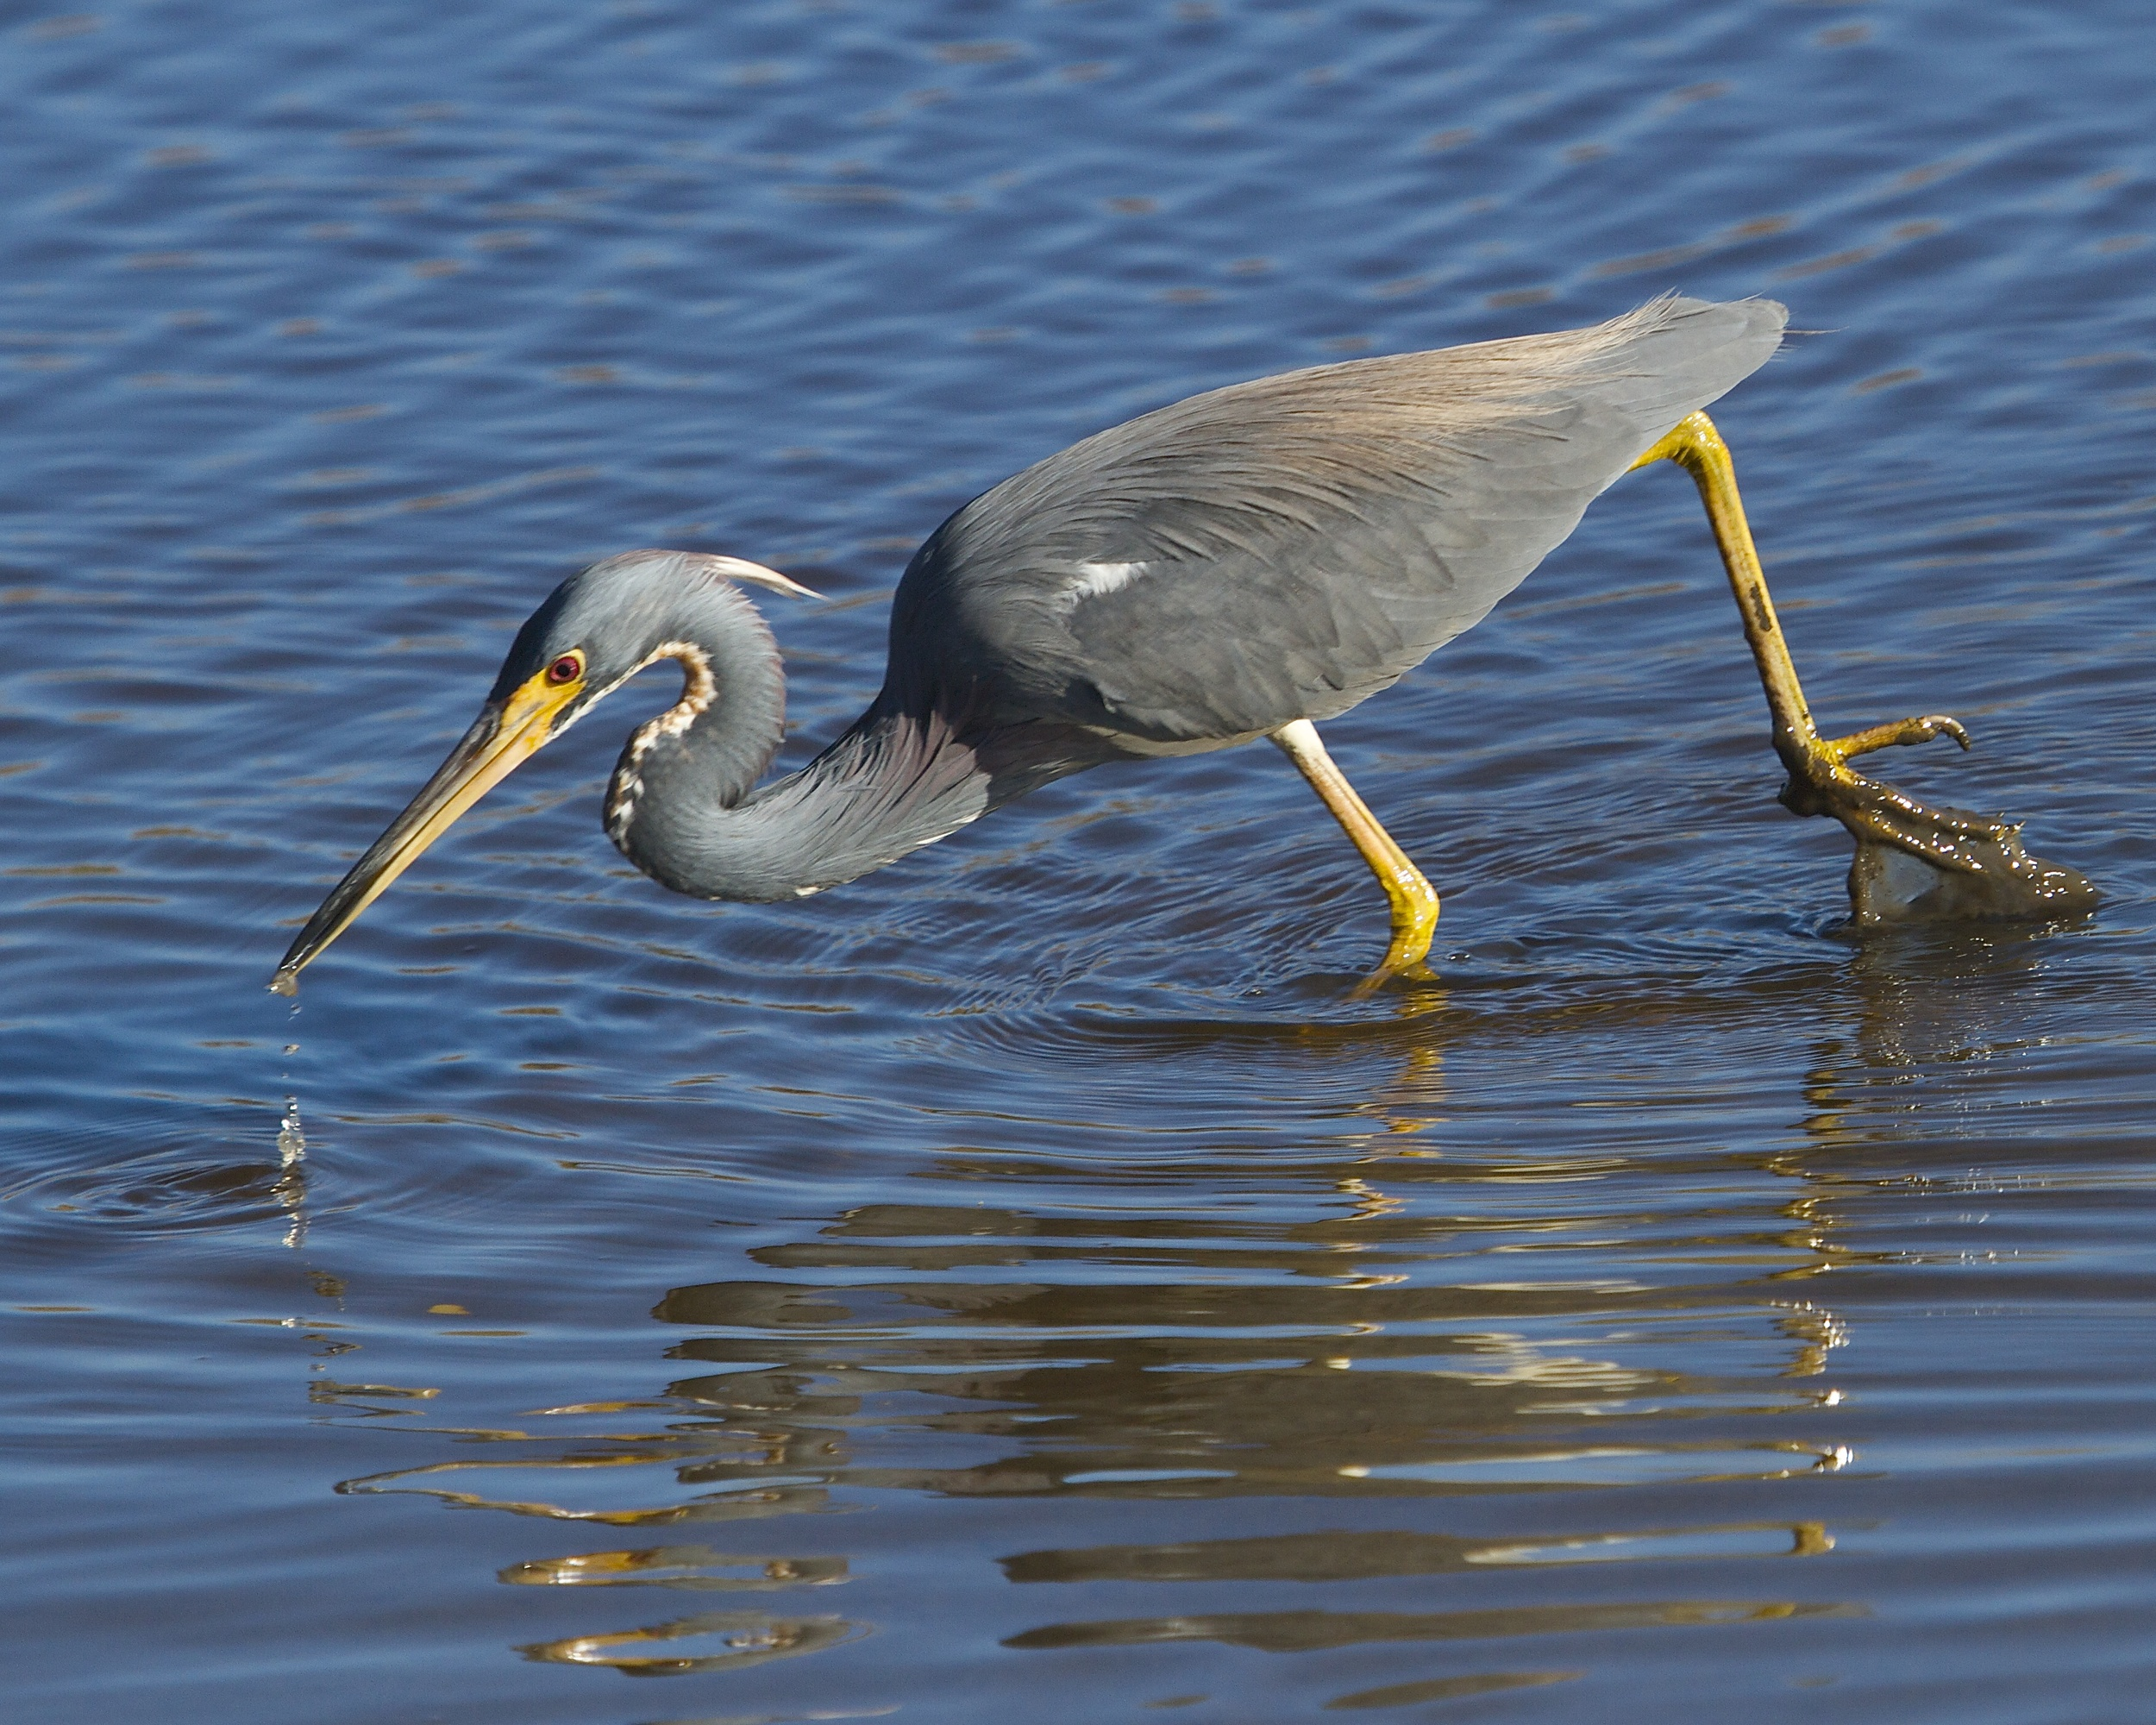 The Tricolored Heron enjoys an afternoon minnow snack.